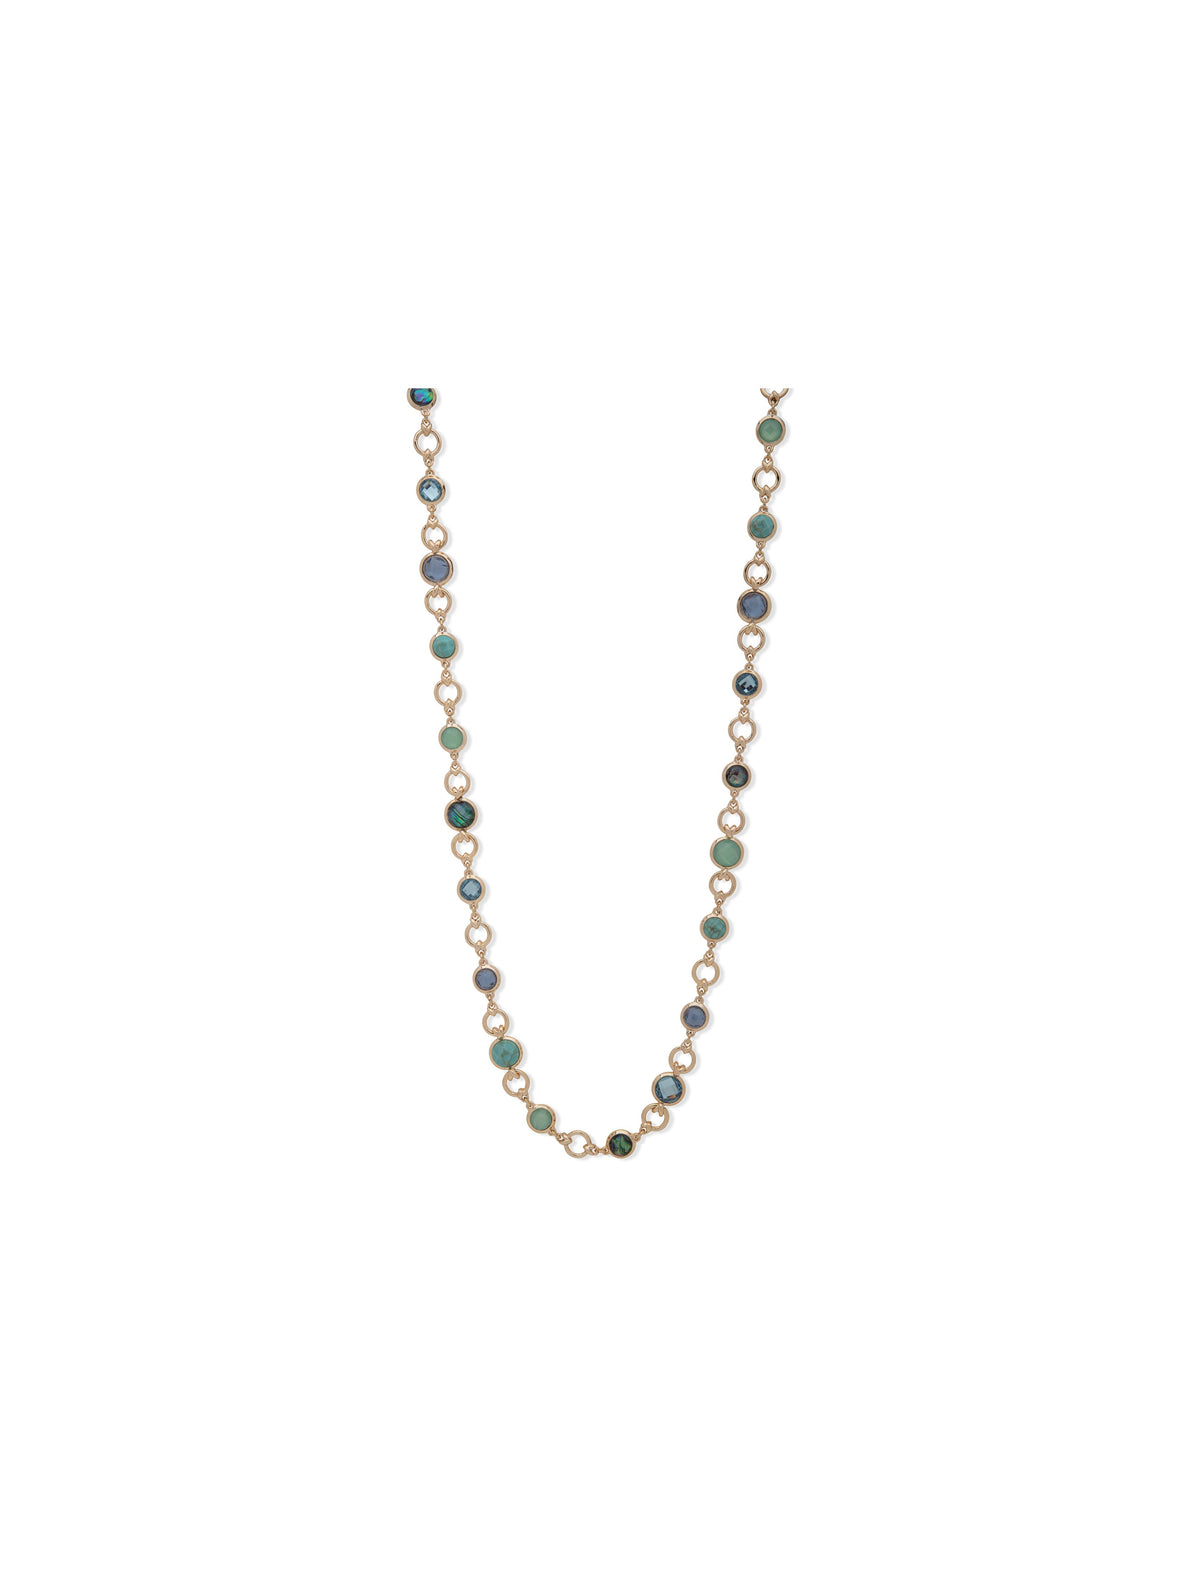 Abalone Channel Strand Necklace